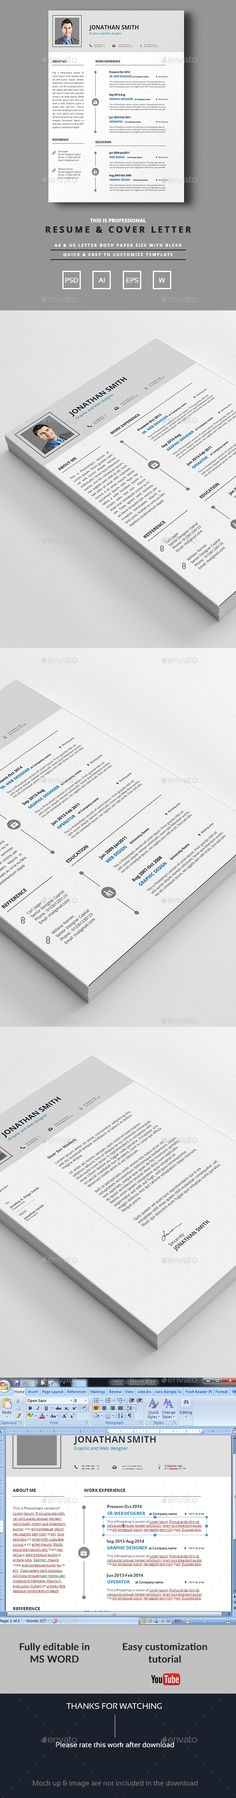 Resume Cv template and Resume cv - is a cv a resume